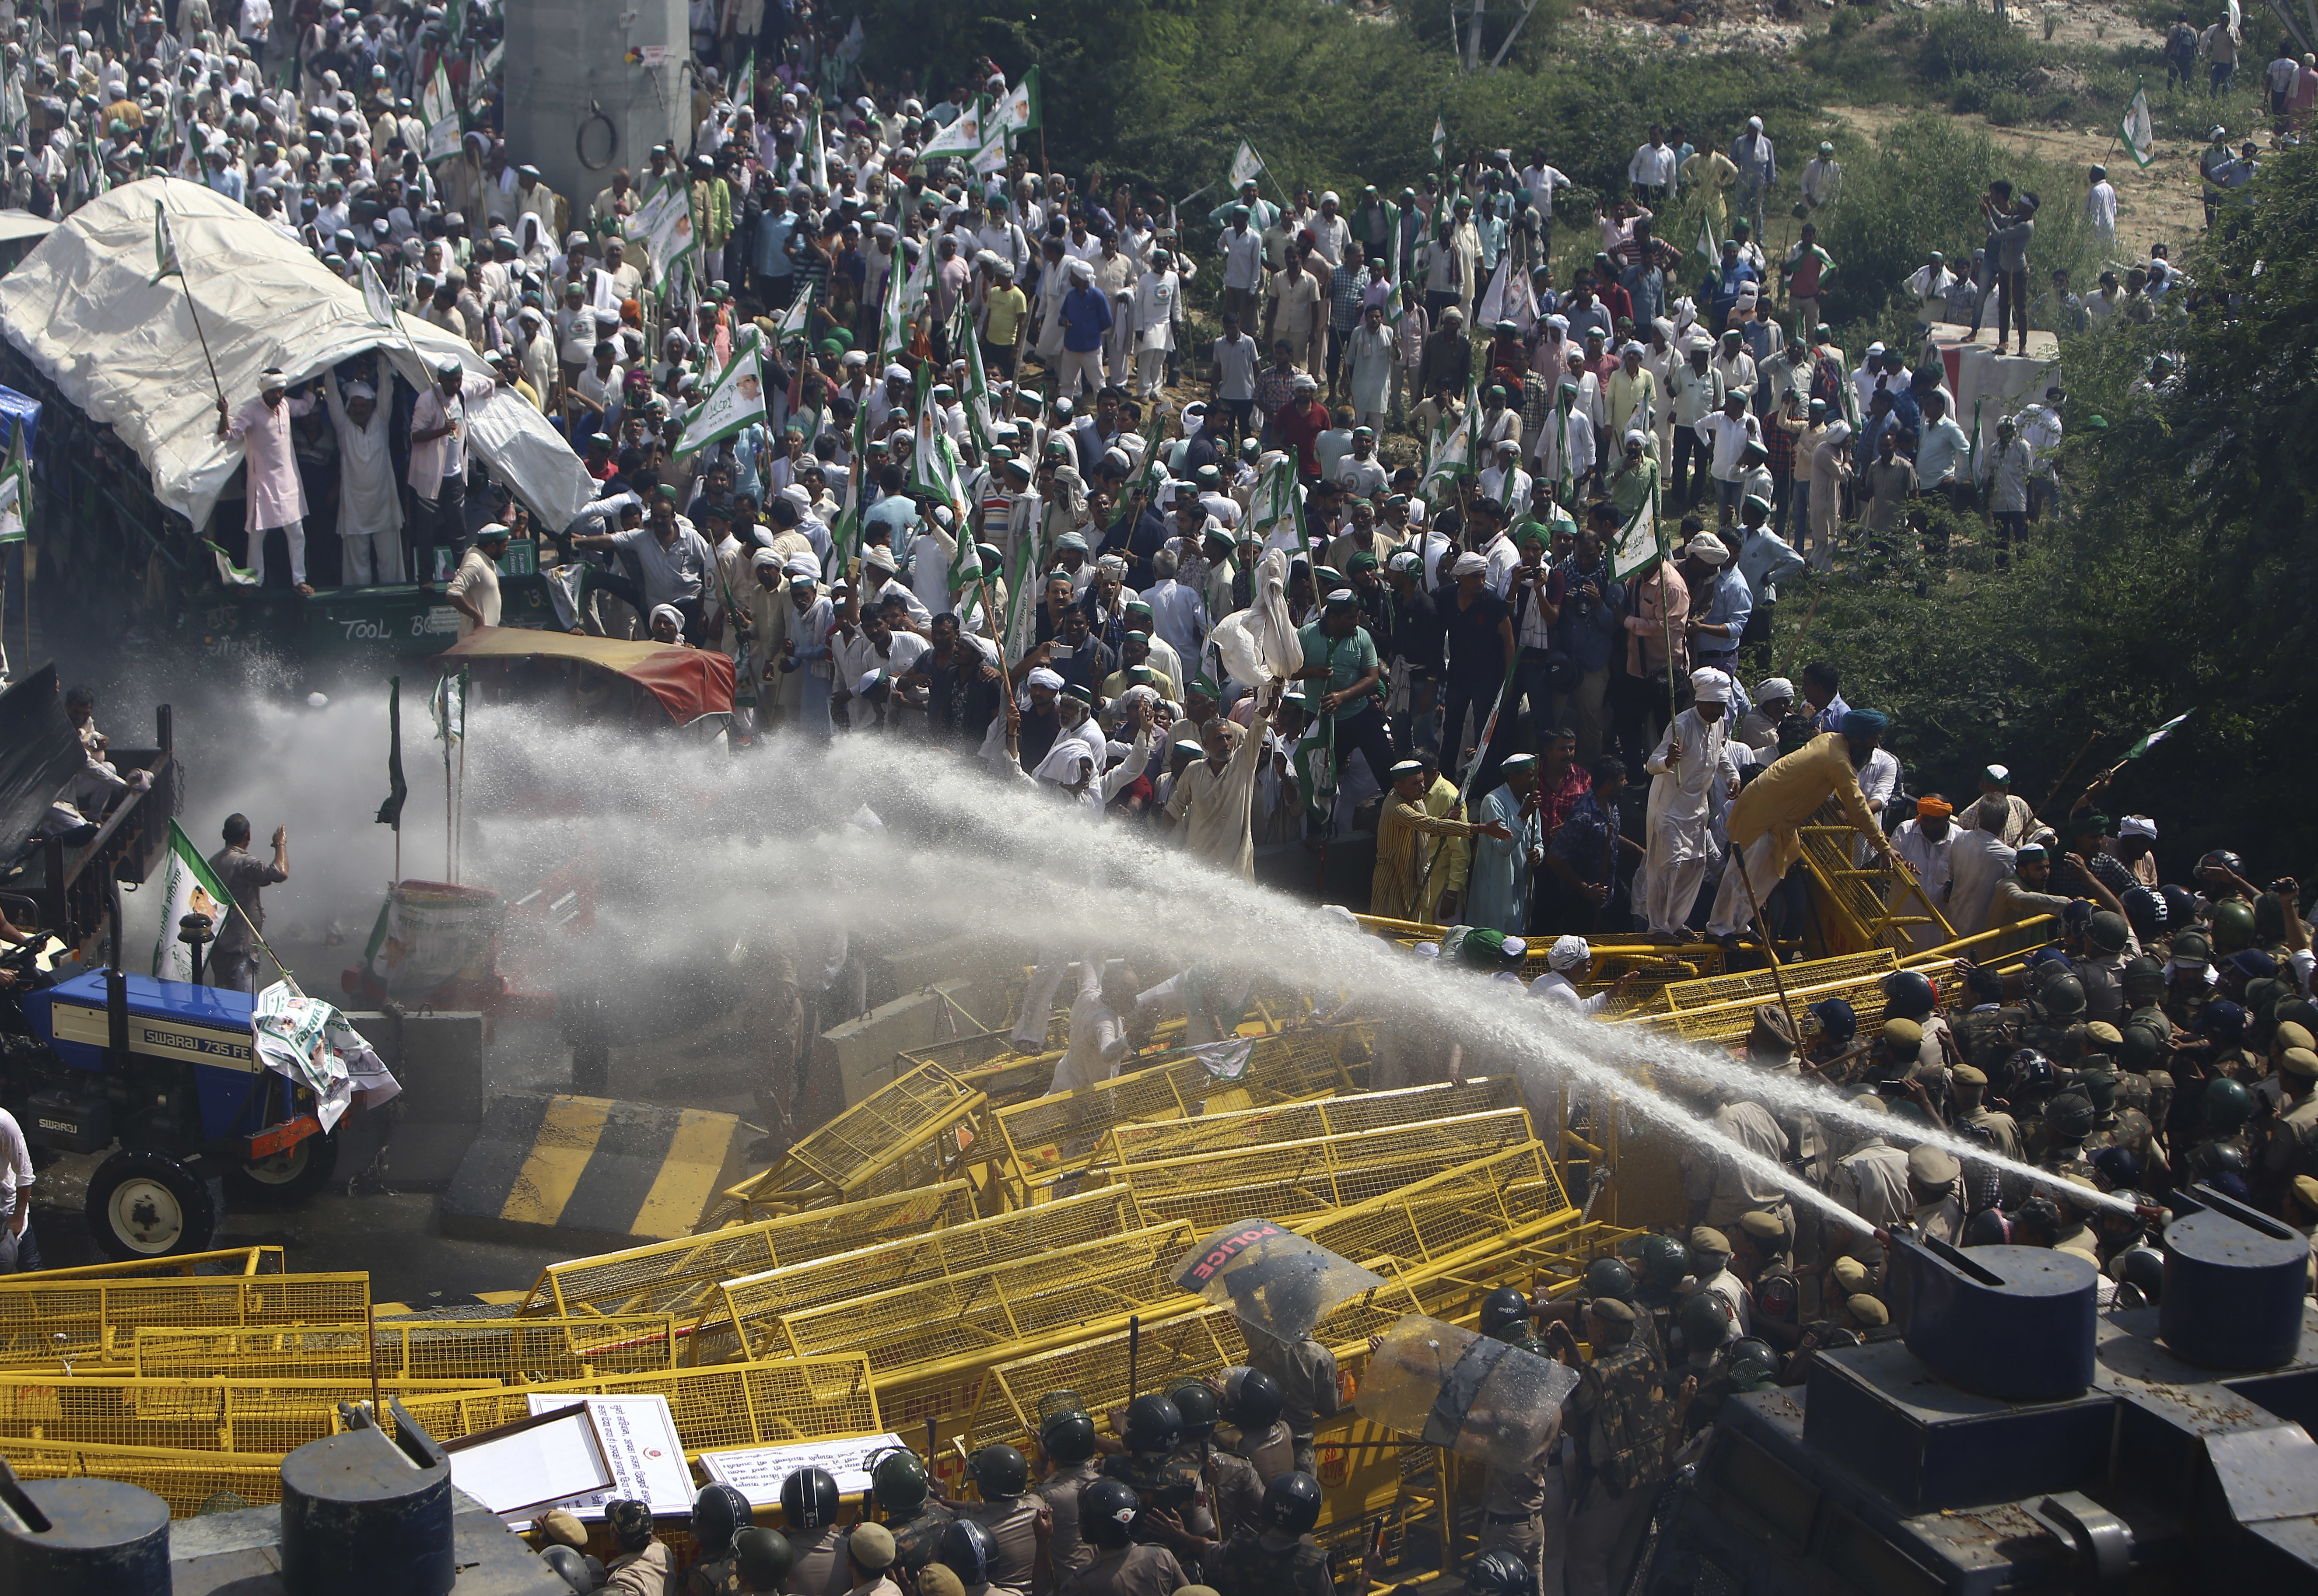 Indian police use water cannons to disperse farmers who were marching to the Indian capital after stopping them at New Delhi's border with neighboring Uttar Pradesh state - AP